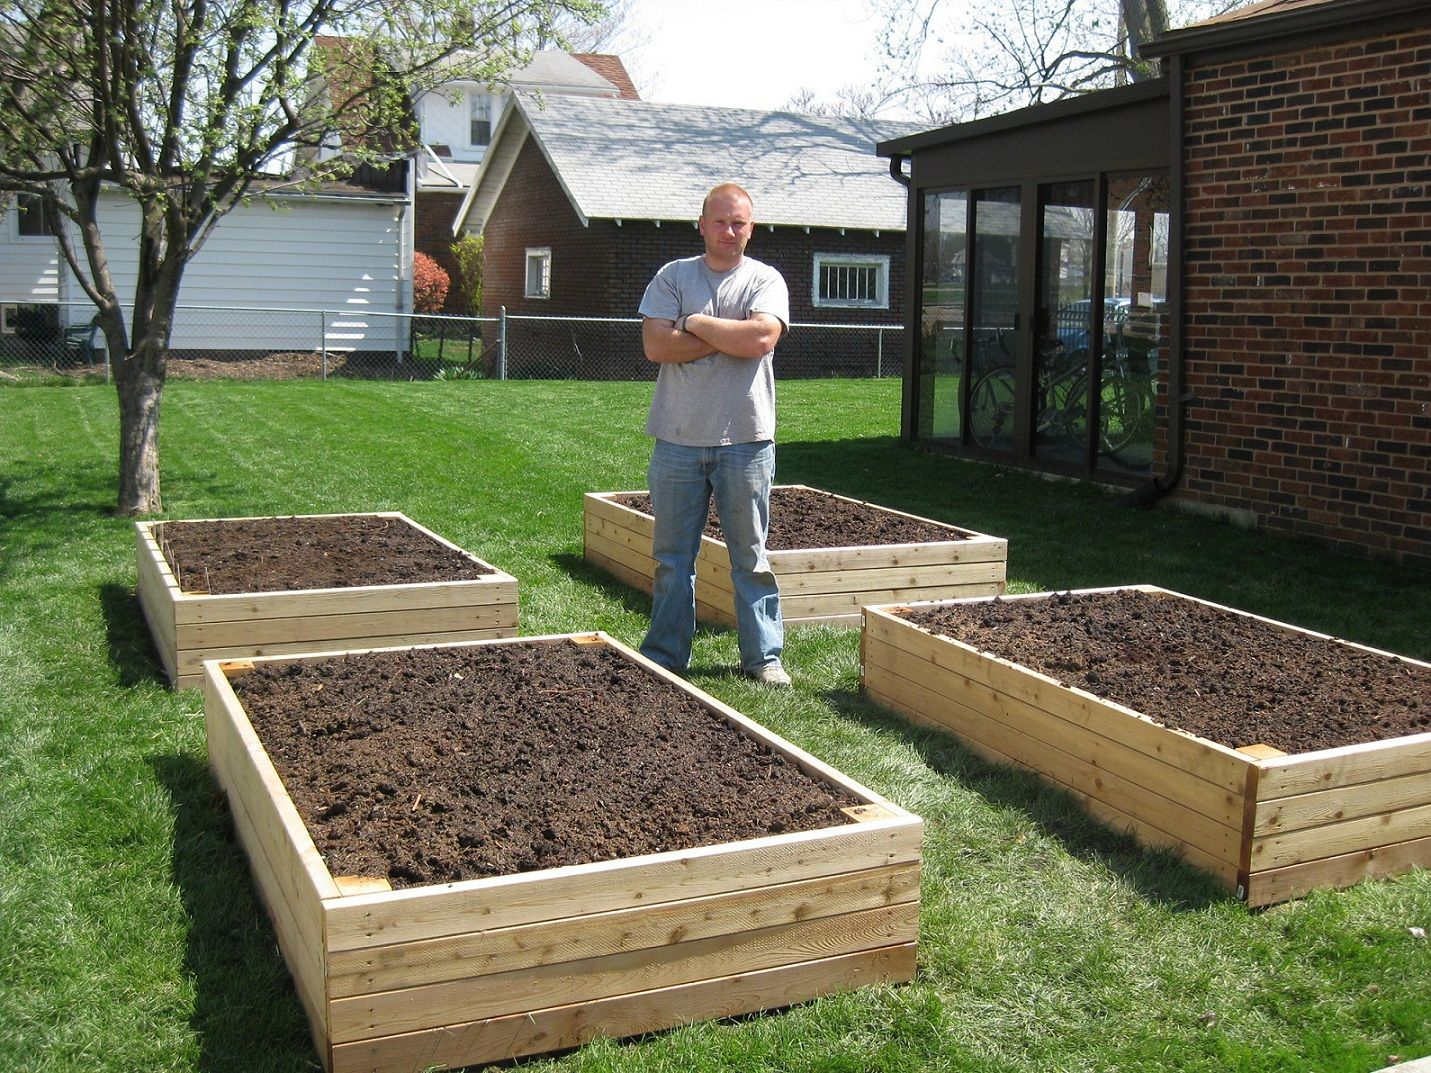 Build a vegetable garden box - Pallet Vegetable Garden Box Ideas